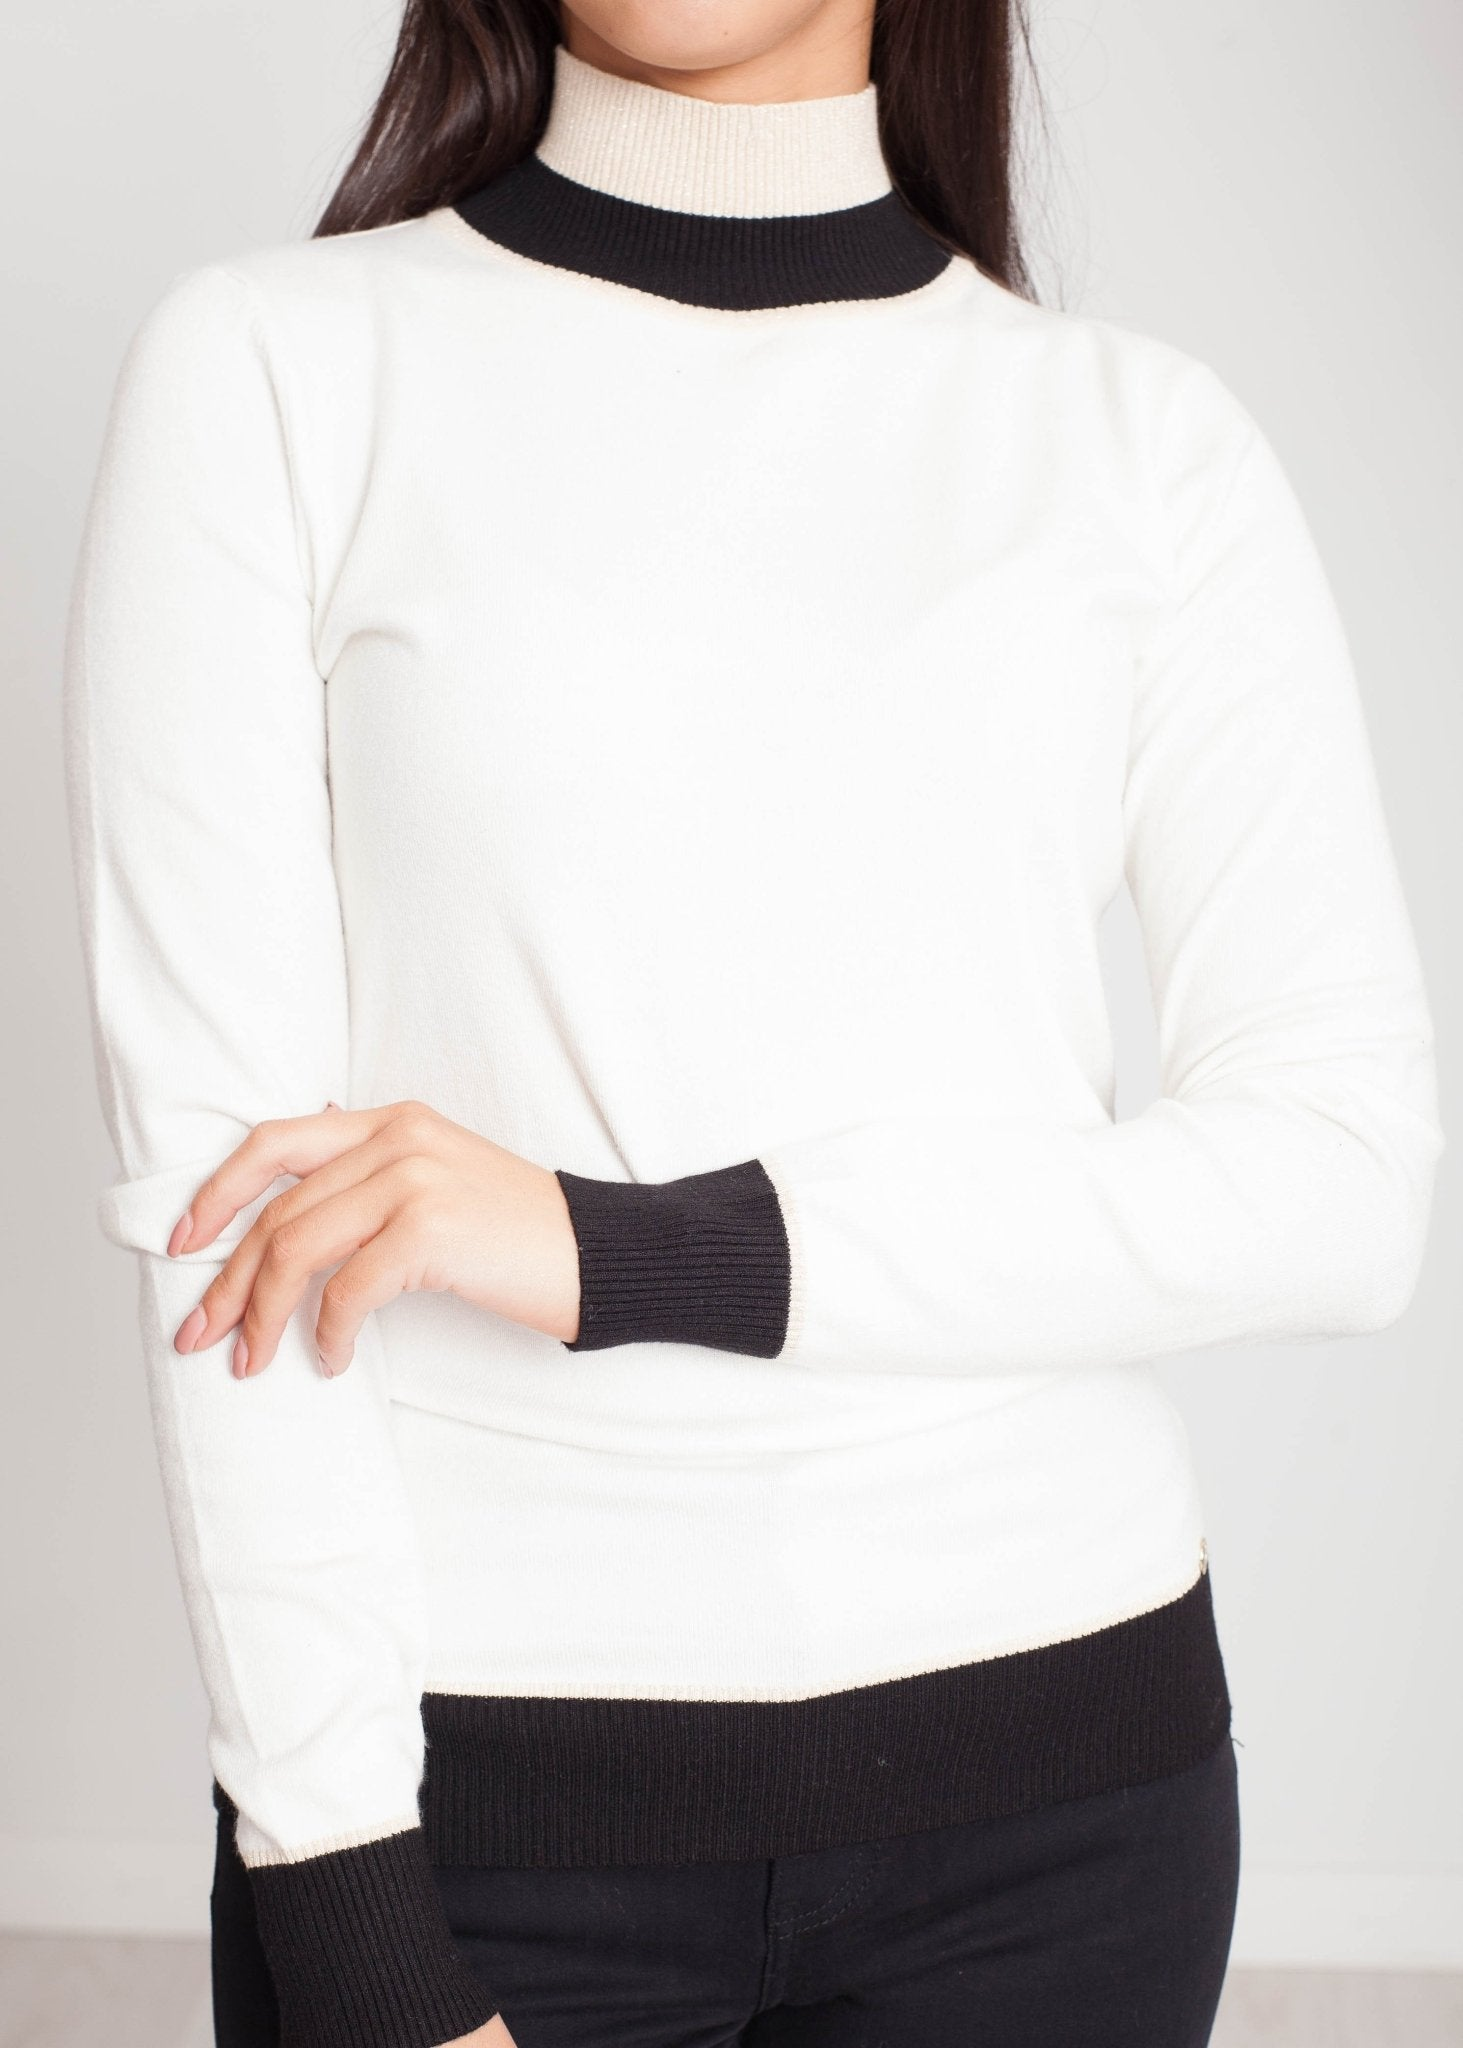 Faye Turtle Neck In Winter White - The Walk in Wardrobe